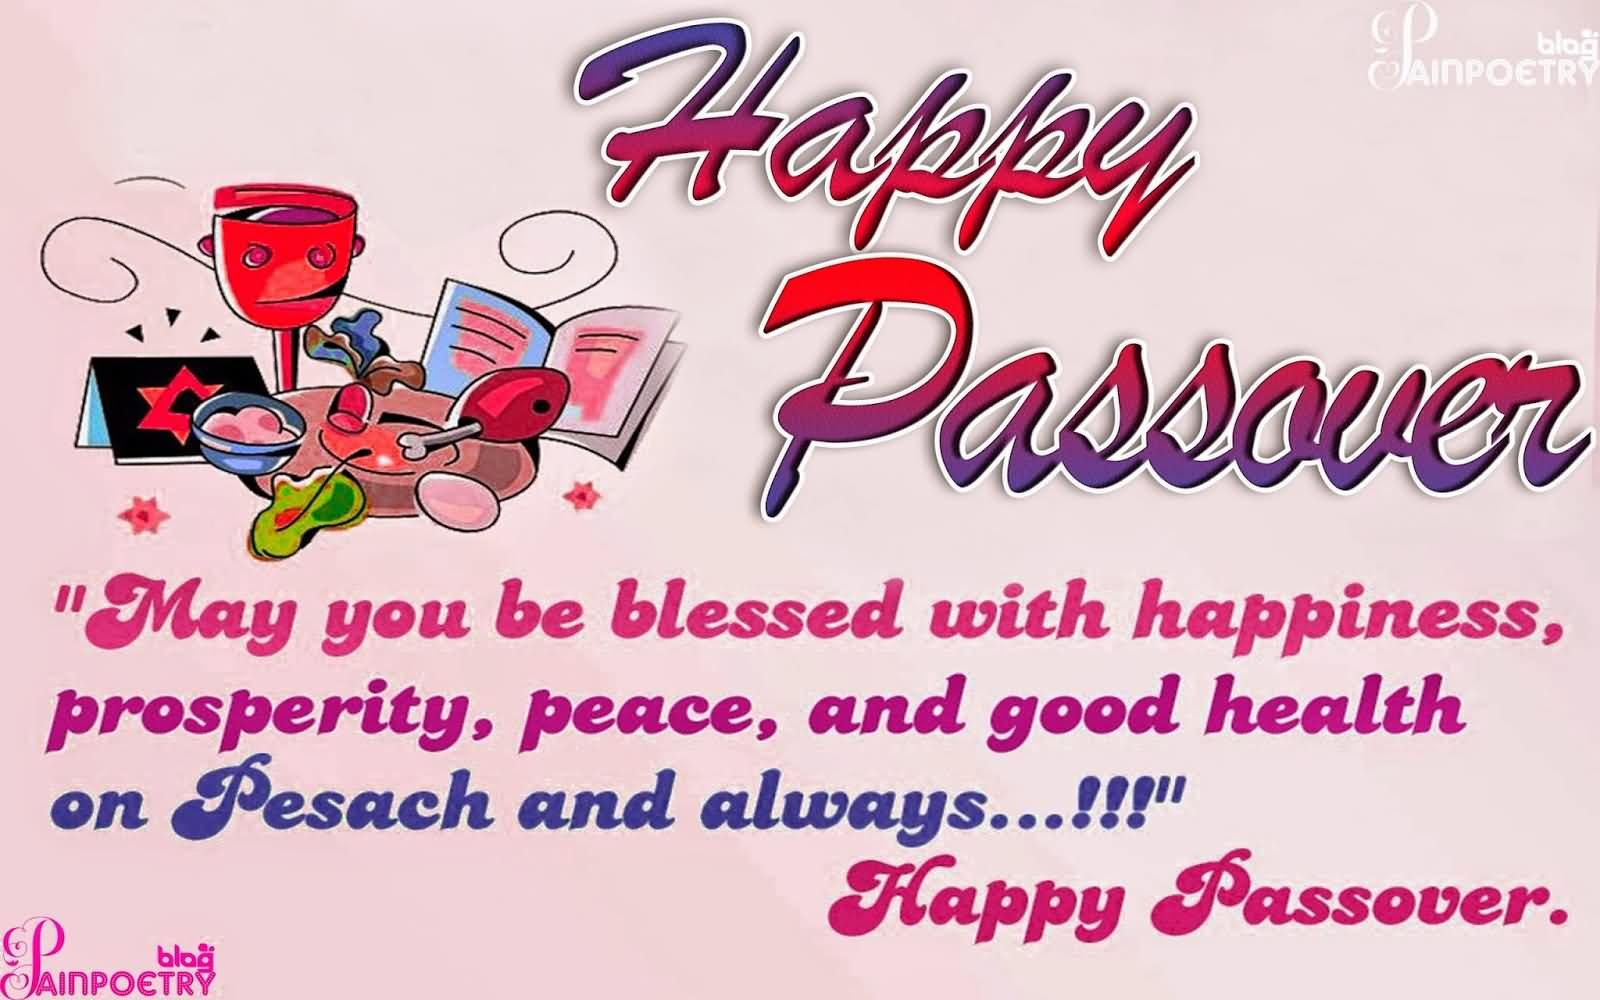 Happy Passover Wishes Greetings Message Image | Picsmine